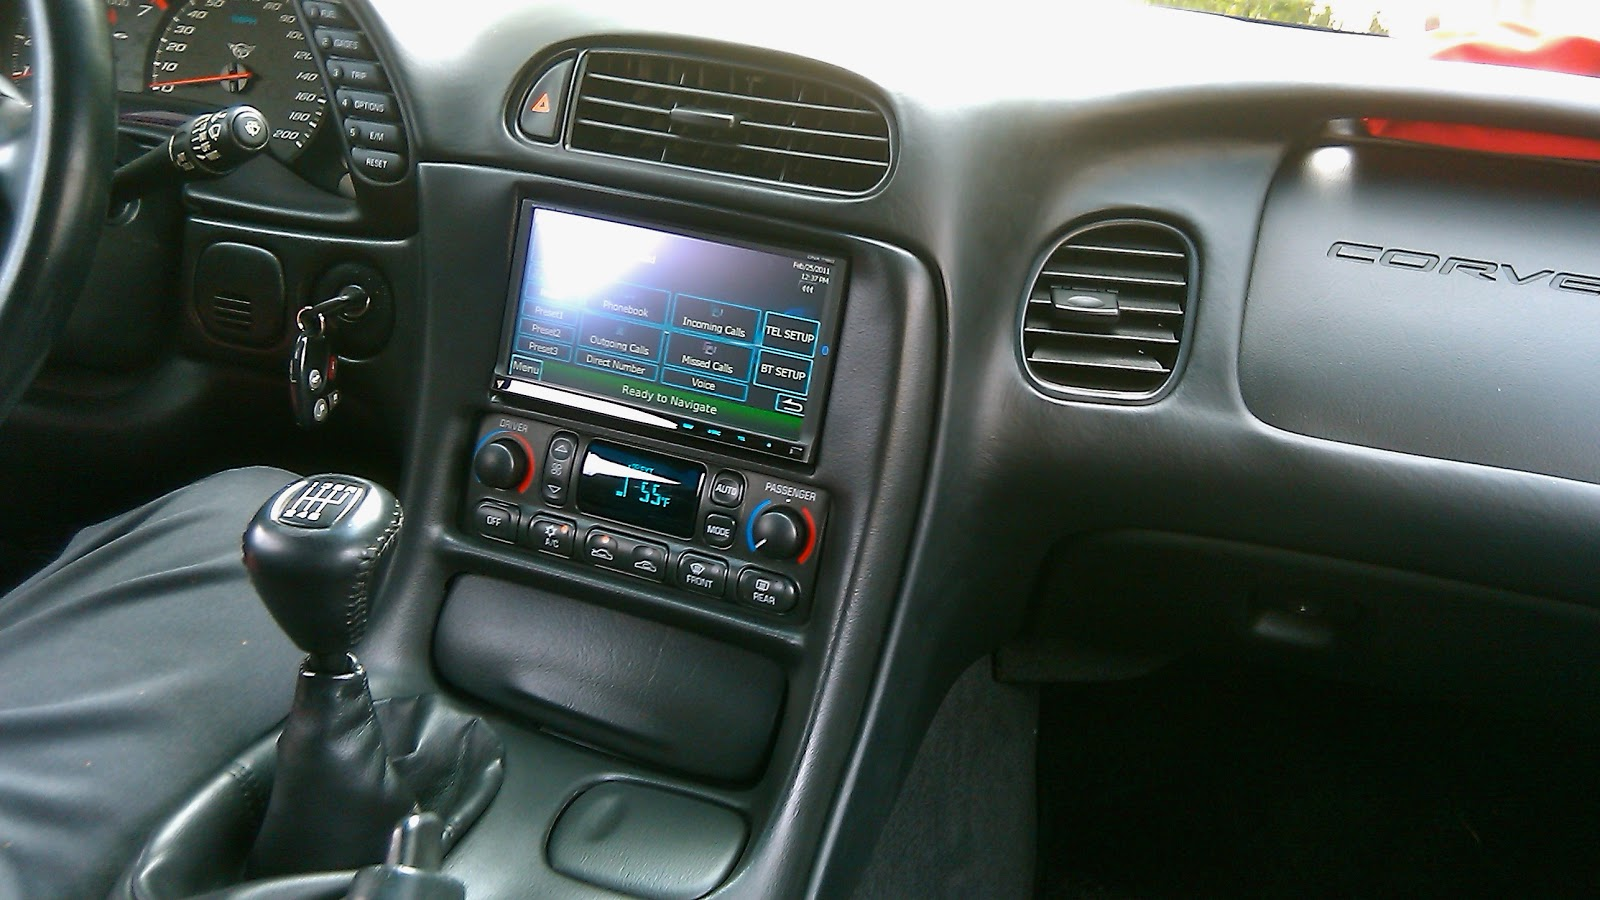 hight resolution of  diagram c3 corvette radio double din installed c5